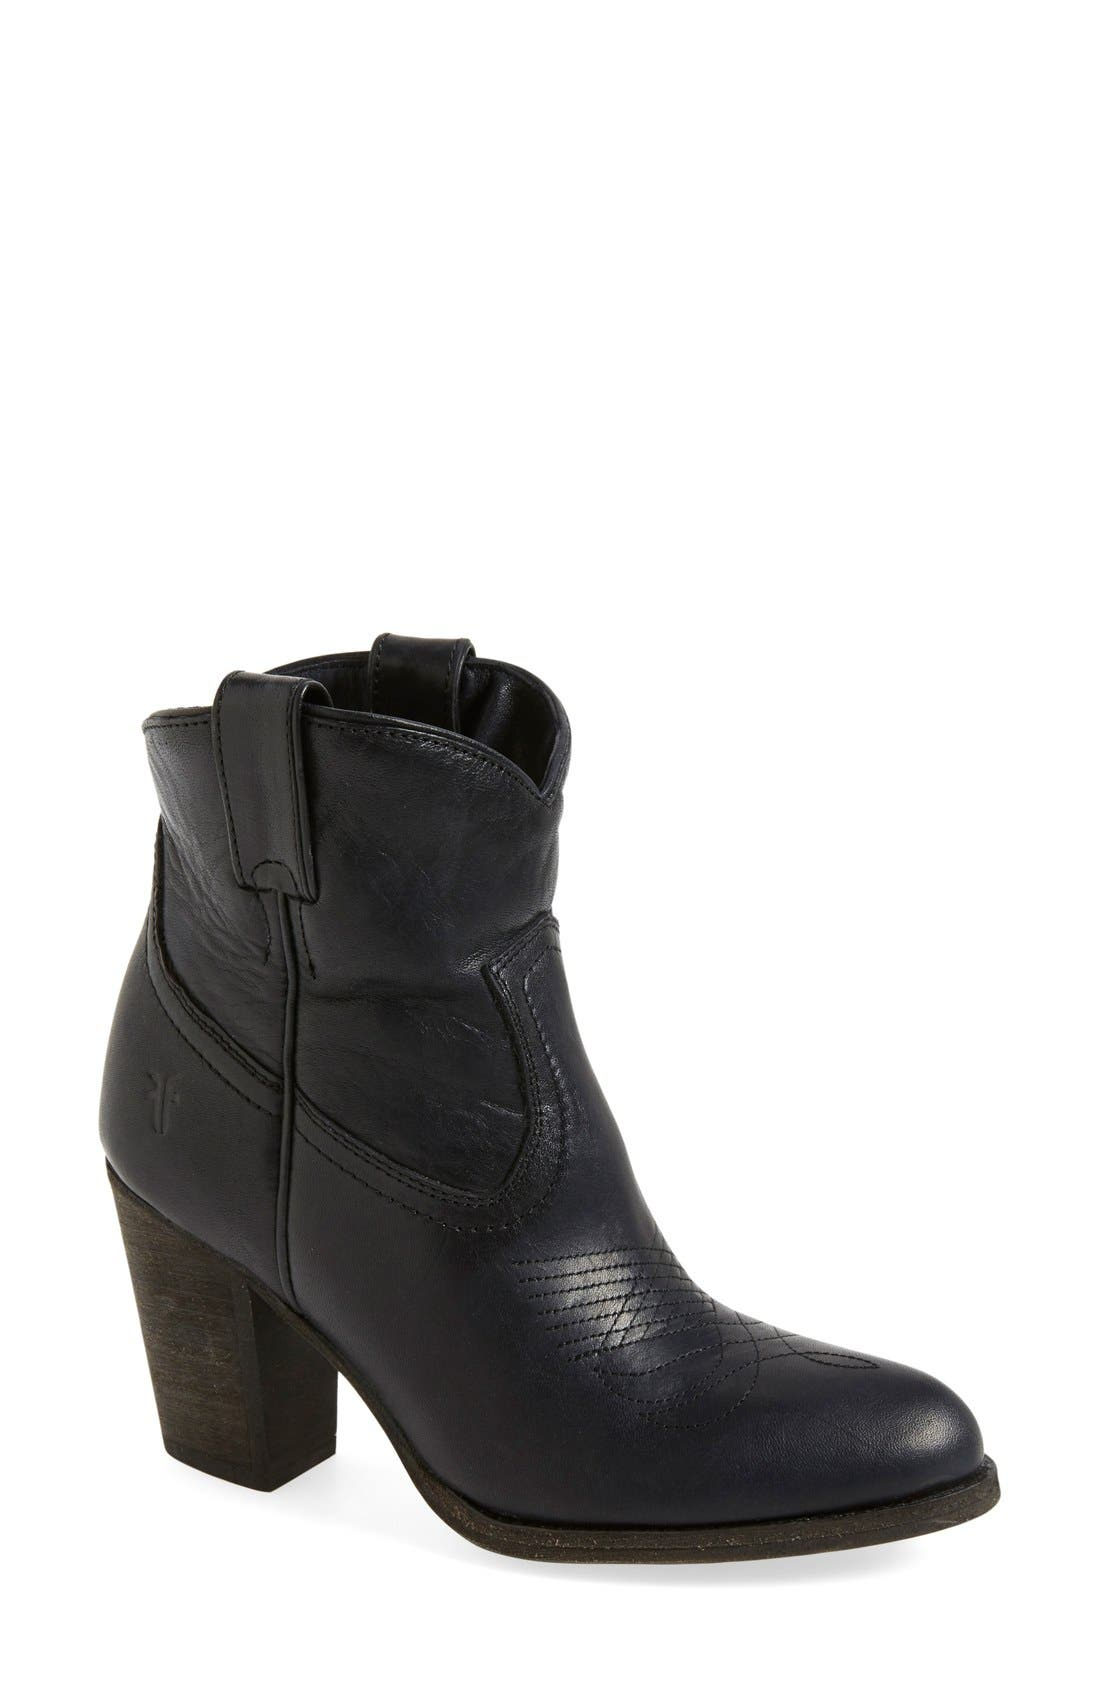 Main Image - Frye 'Ilana' Short Western Boot (Women)